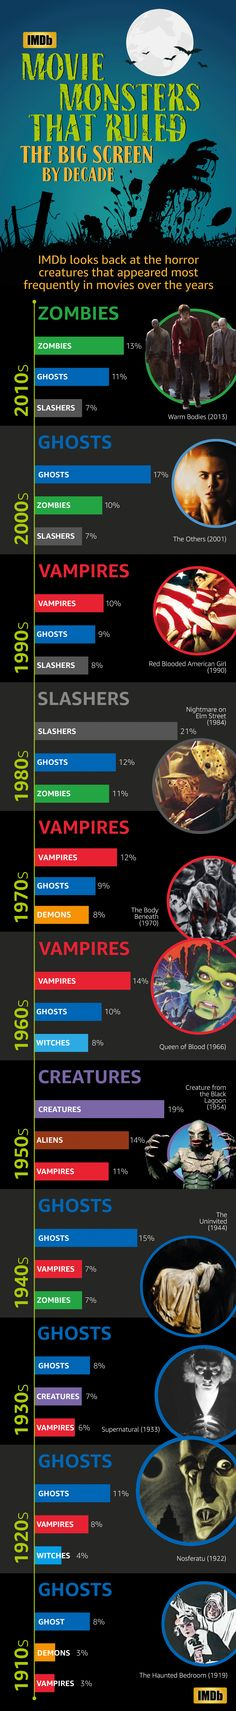 Horror Monsters that Ruled the Screen each Decade - Imgur